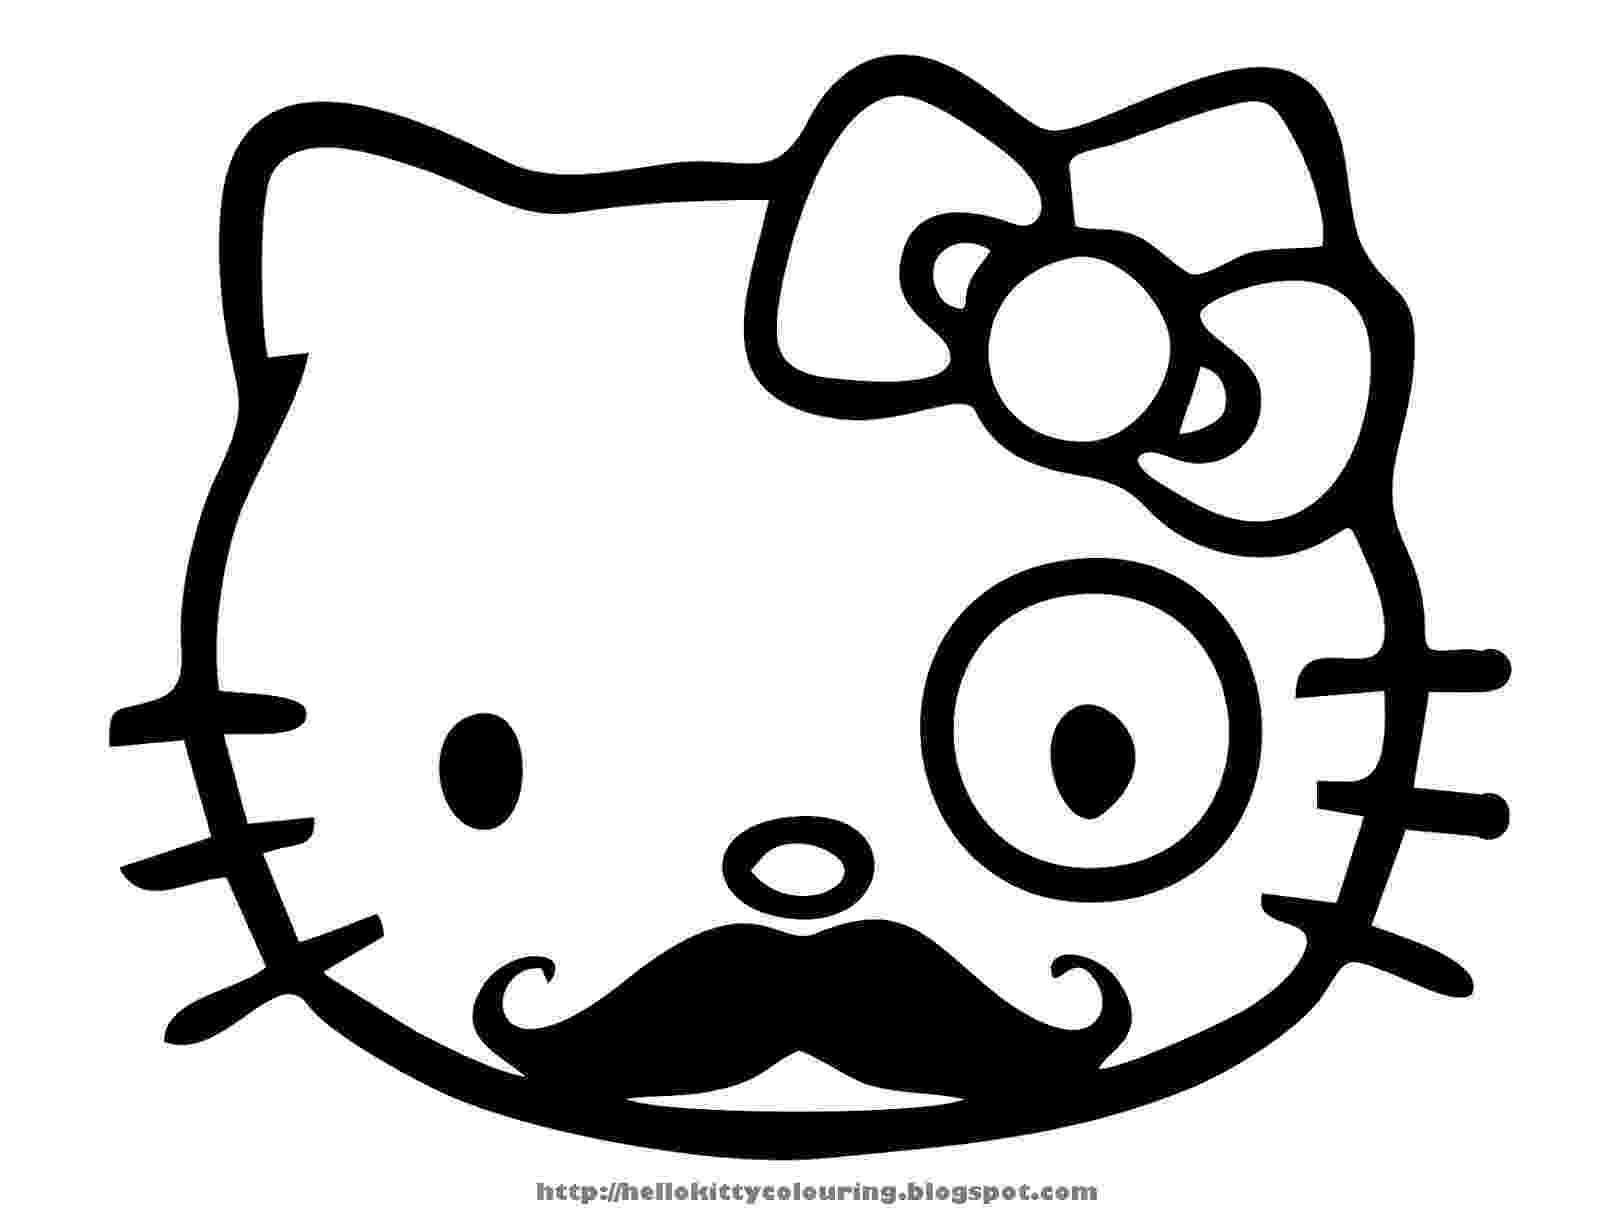 coloring pages of hello kitty november 2011 hello kitty kitty of pages hello coloring